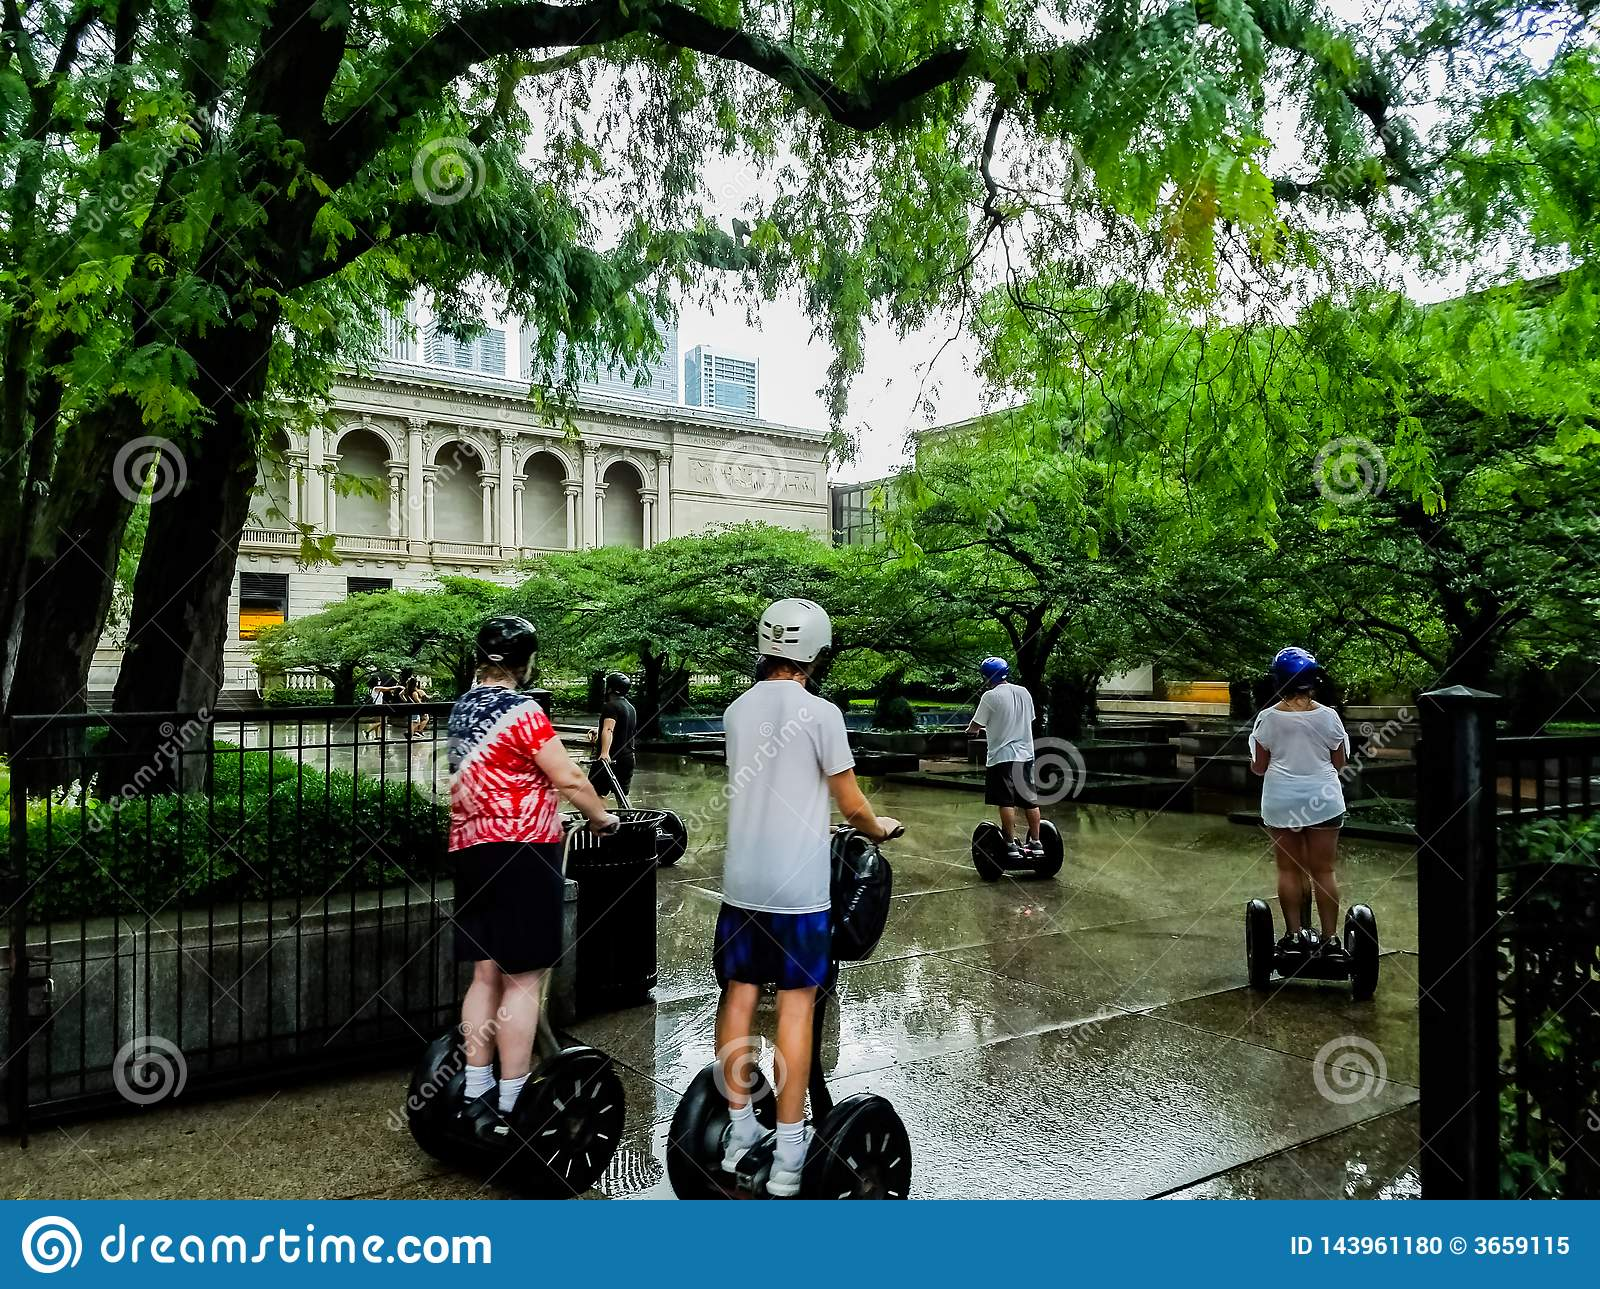 Chicago, Illinois, USA. 07 07 2018. Group of tourists on segways tour in the park near museum